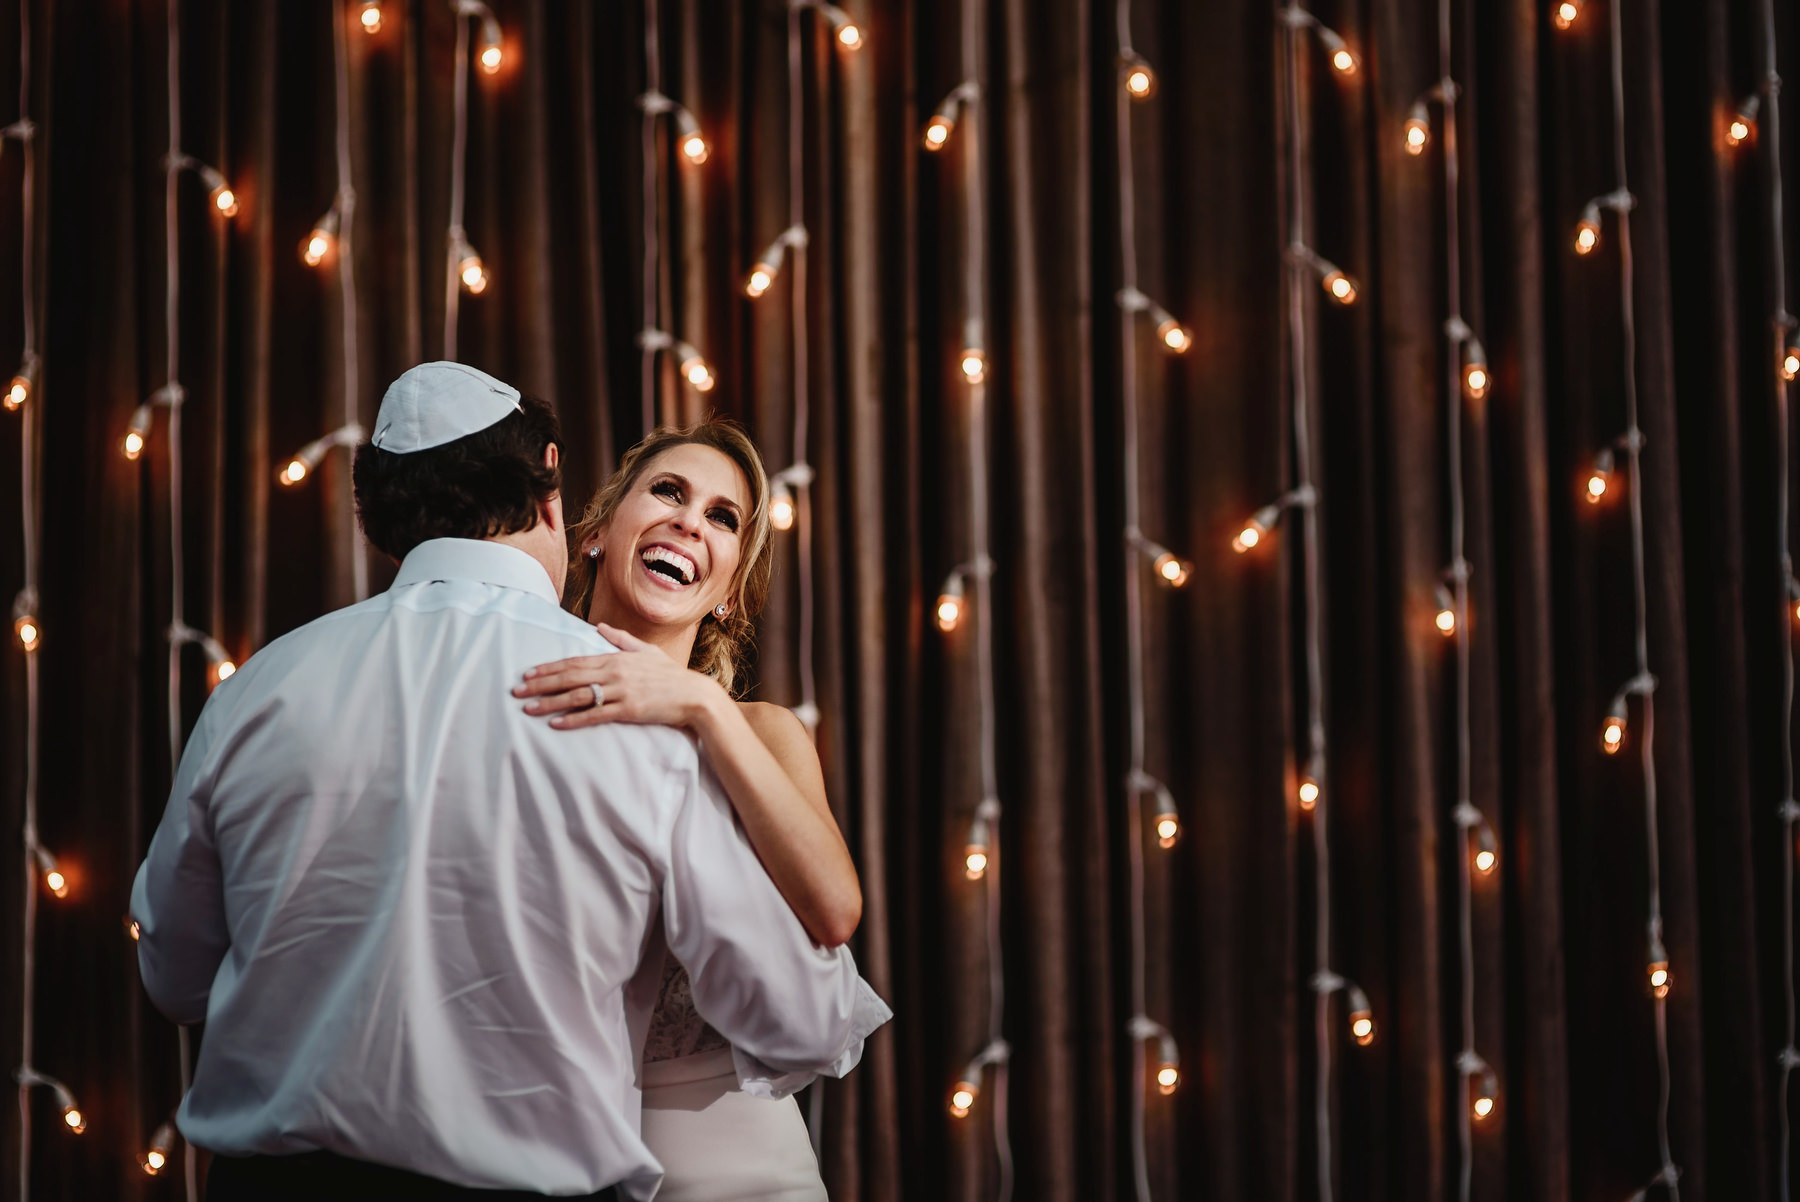 Jewish wedding potographer